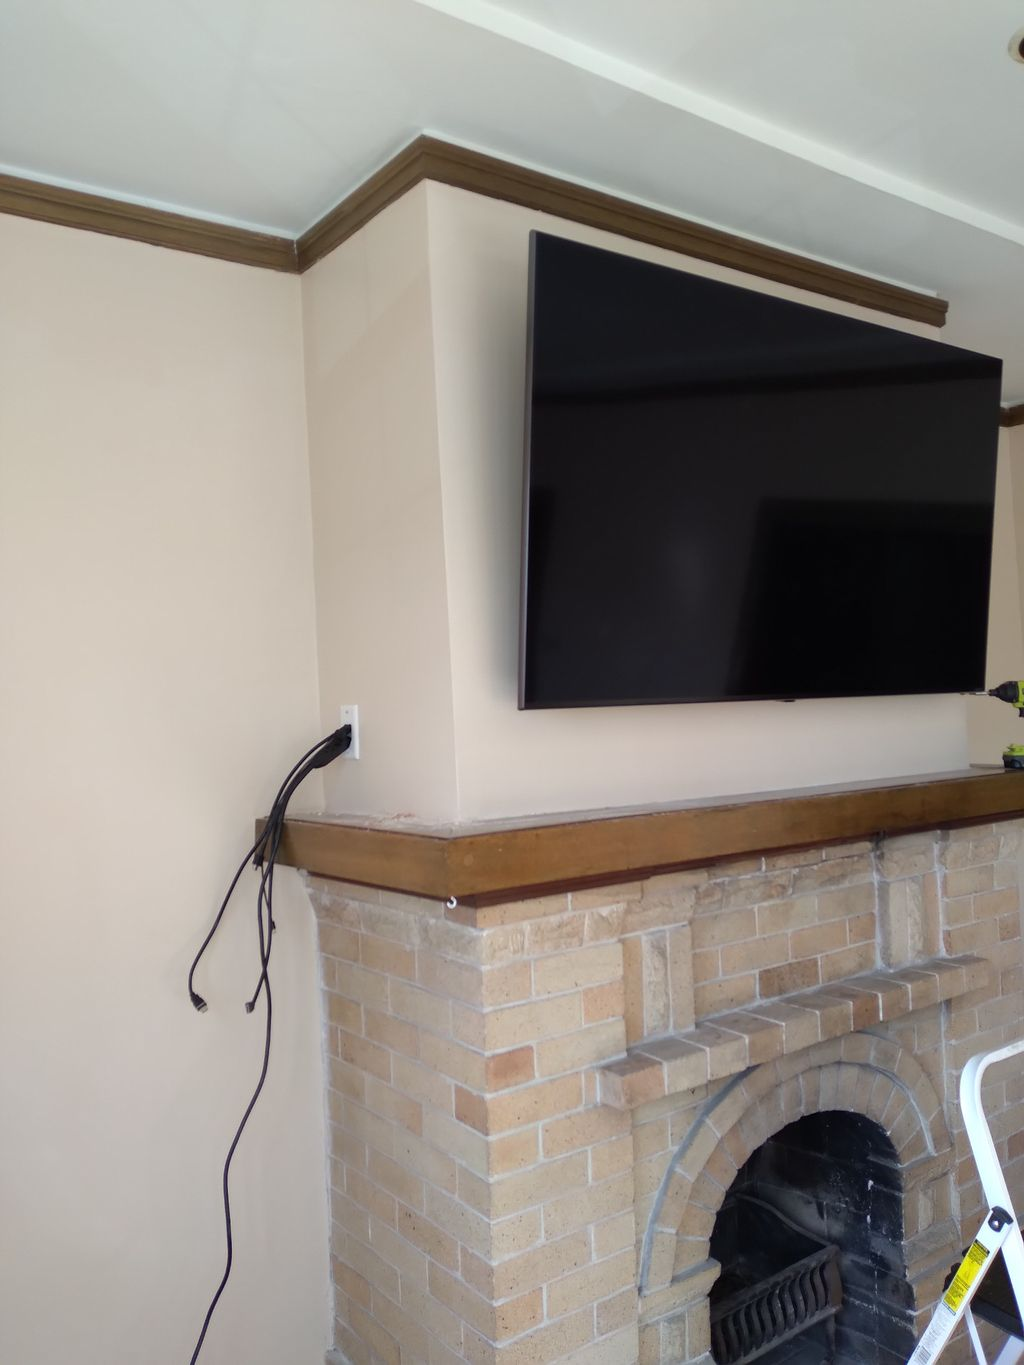 Mounting tv 65 above fireplace